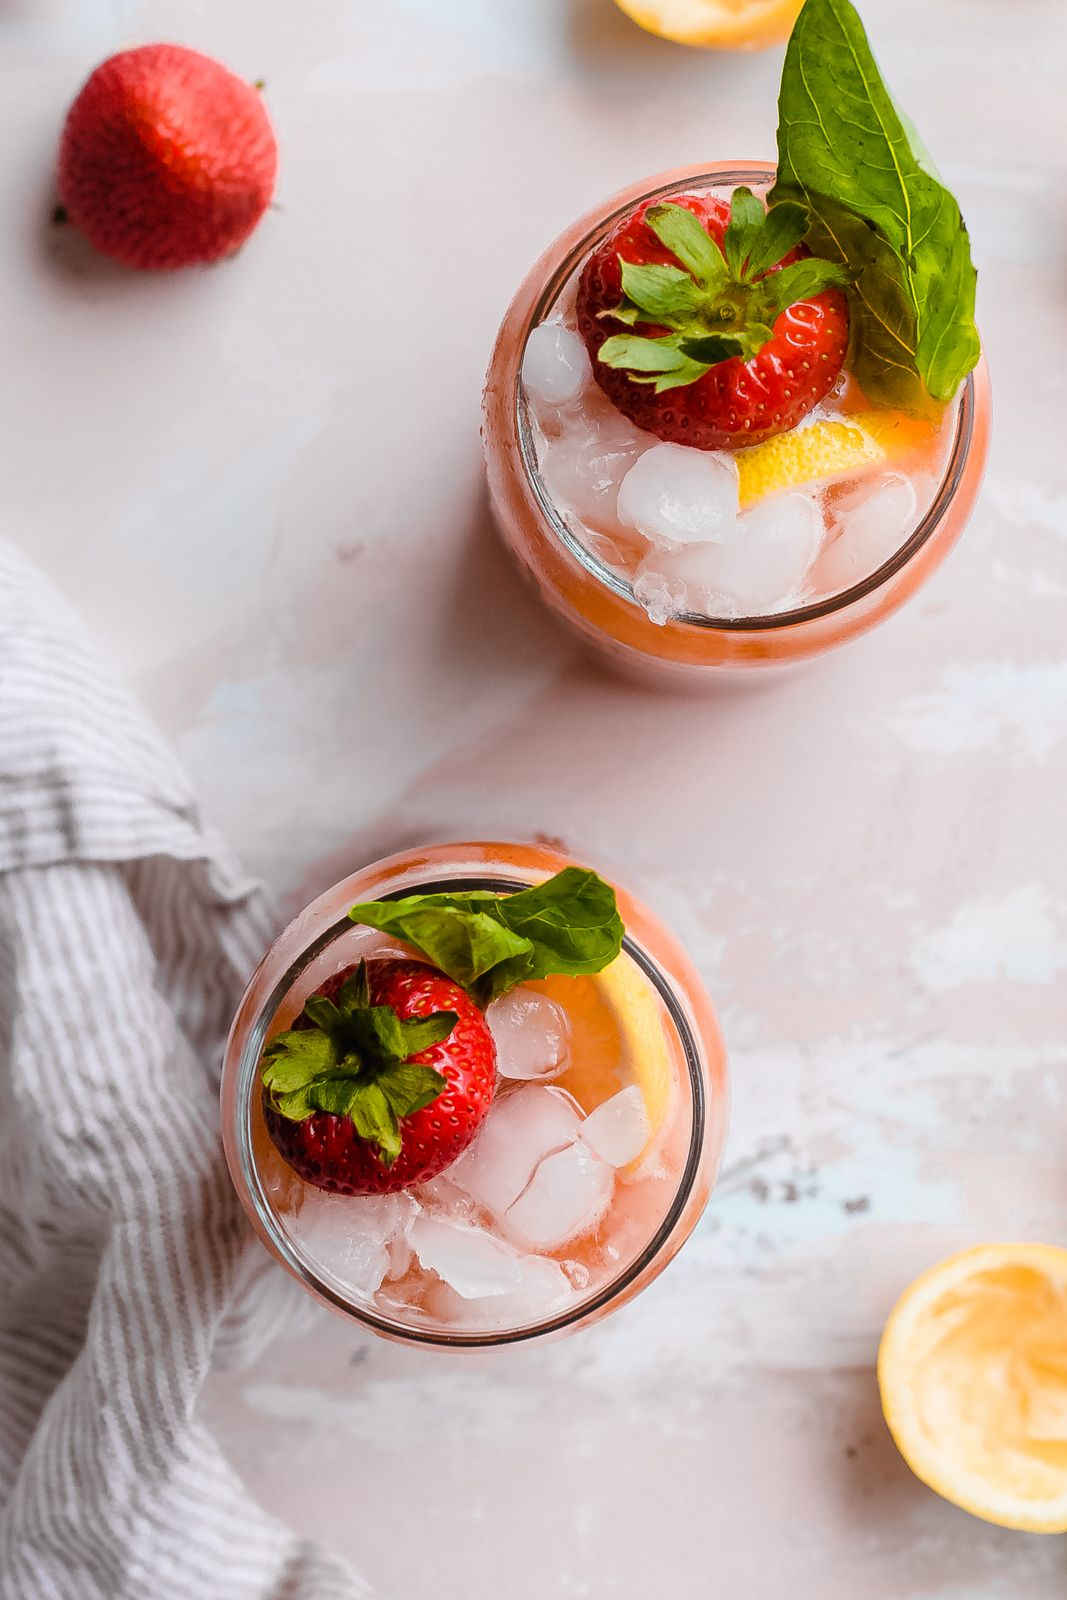 Refreshing Strawberry Basil Lemonade Recipe - Little Spice Jar